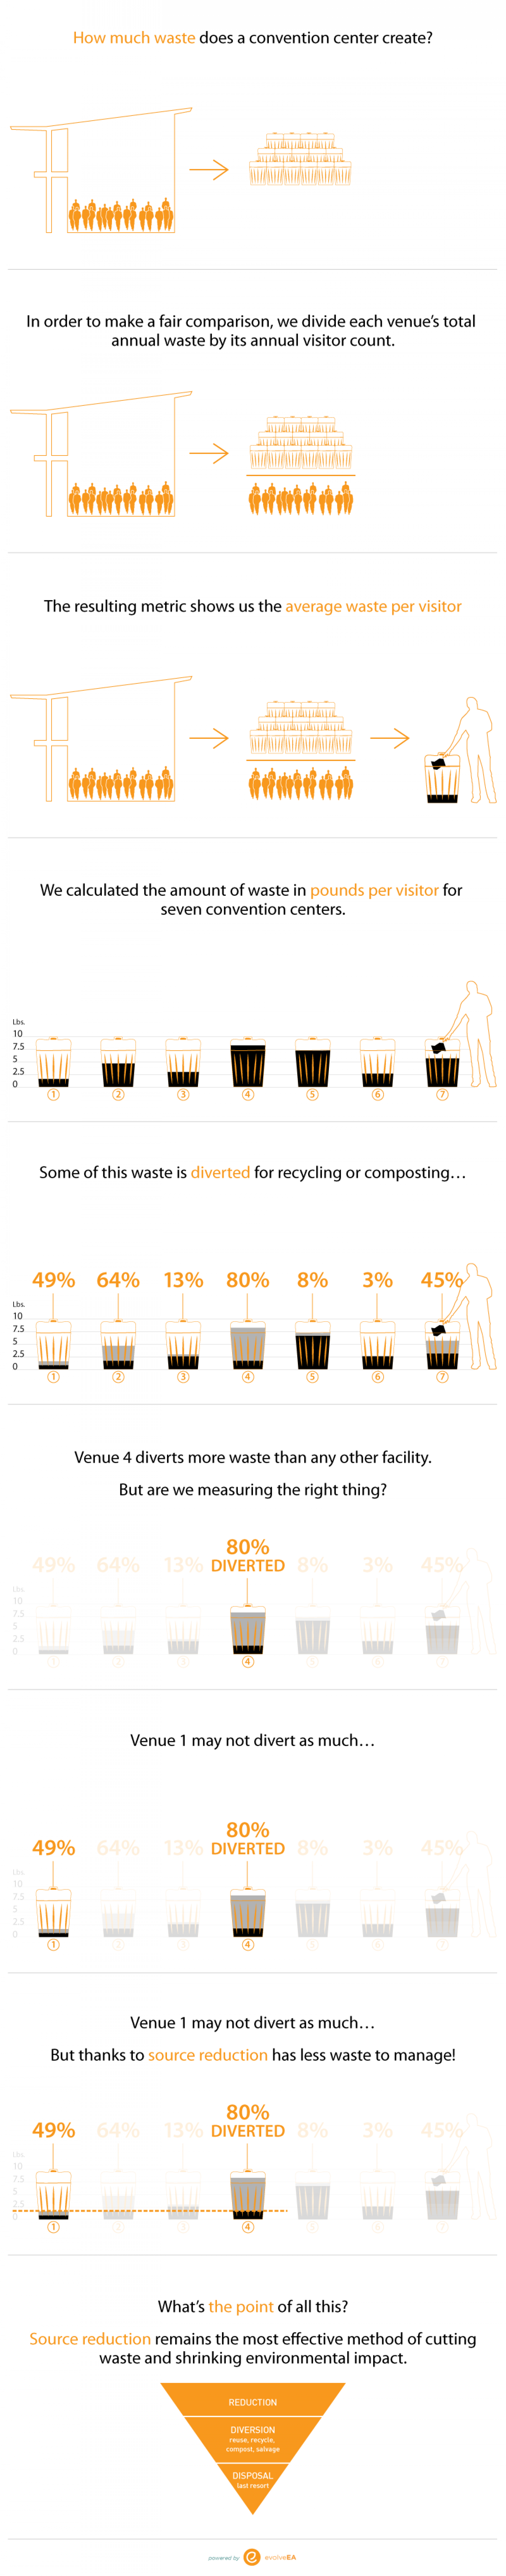 Cutting Landfill Waste Infographic